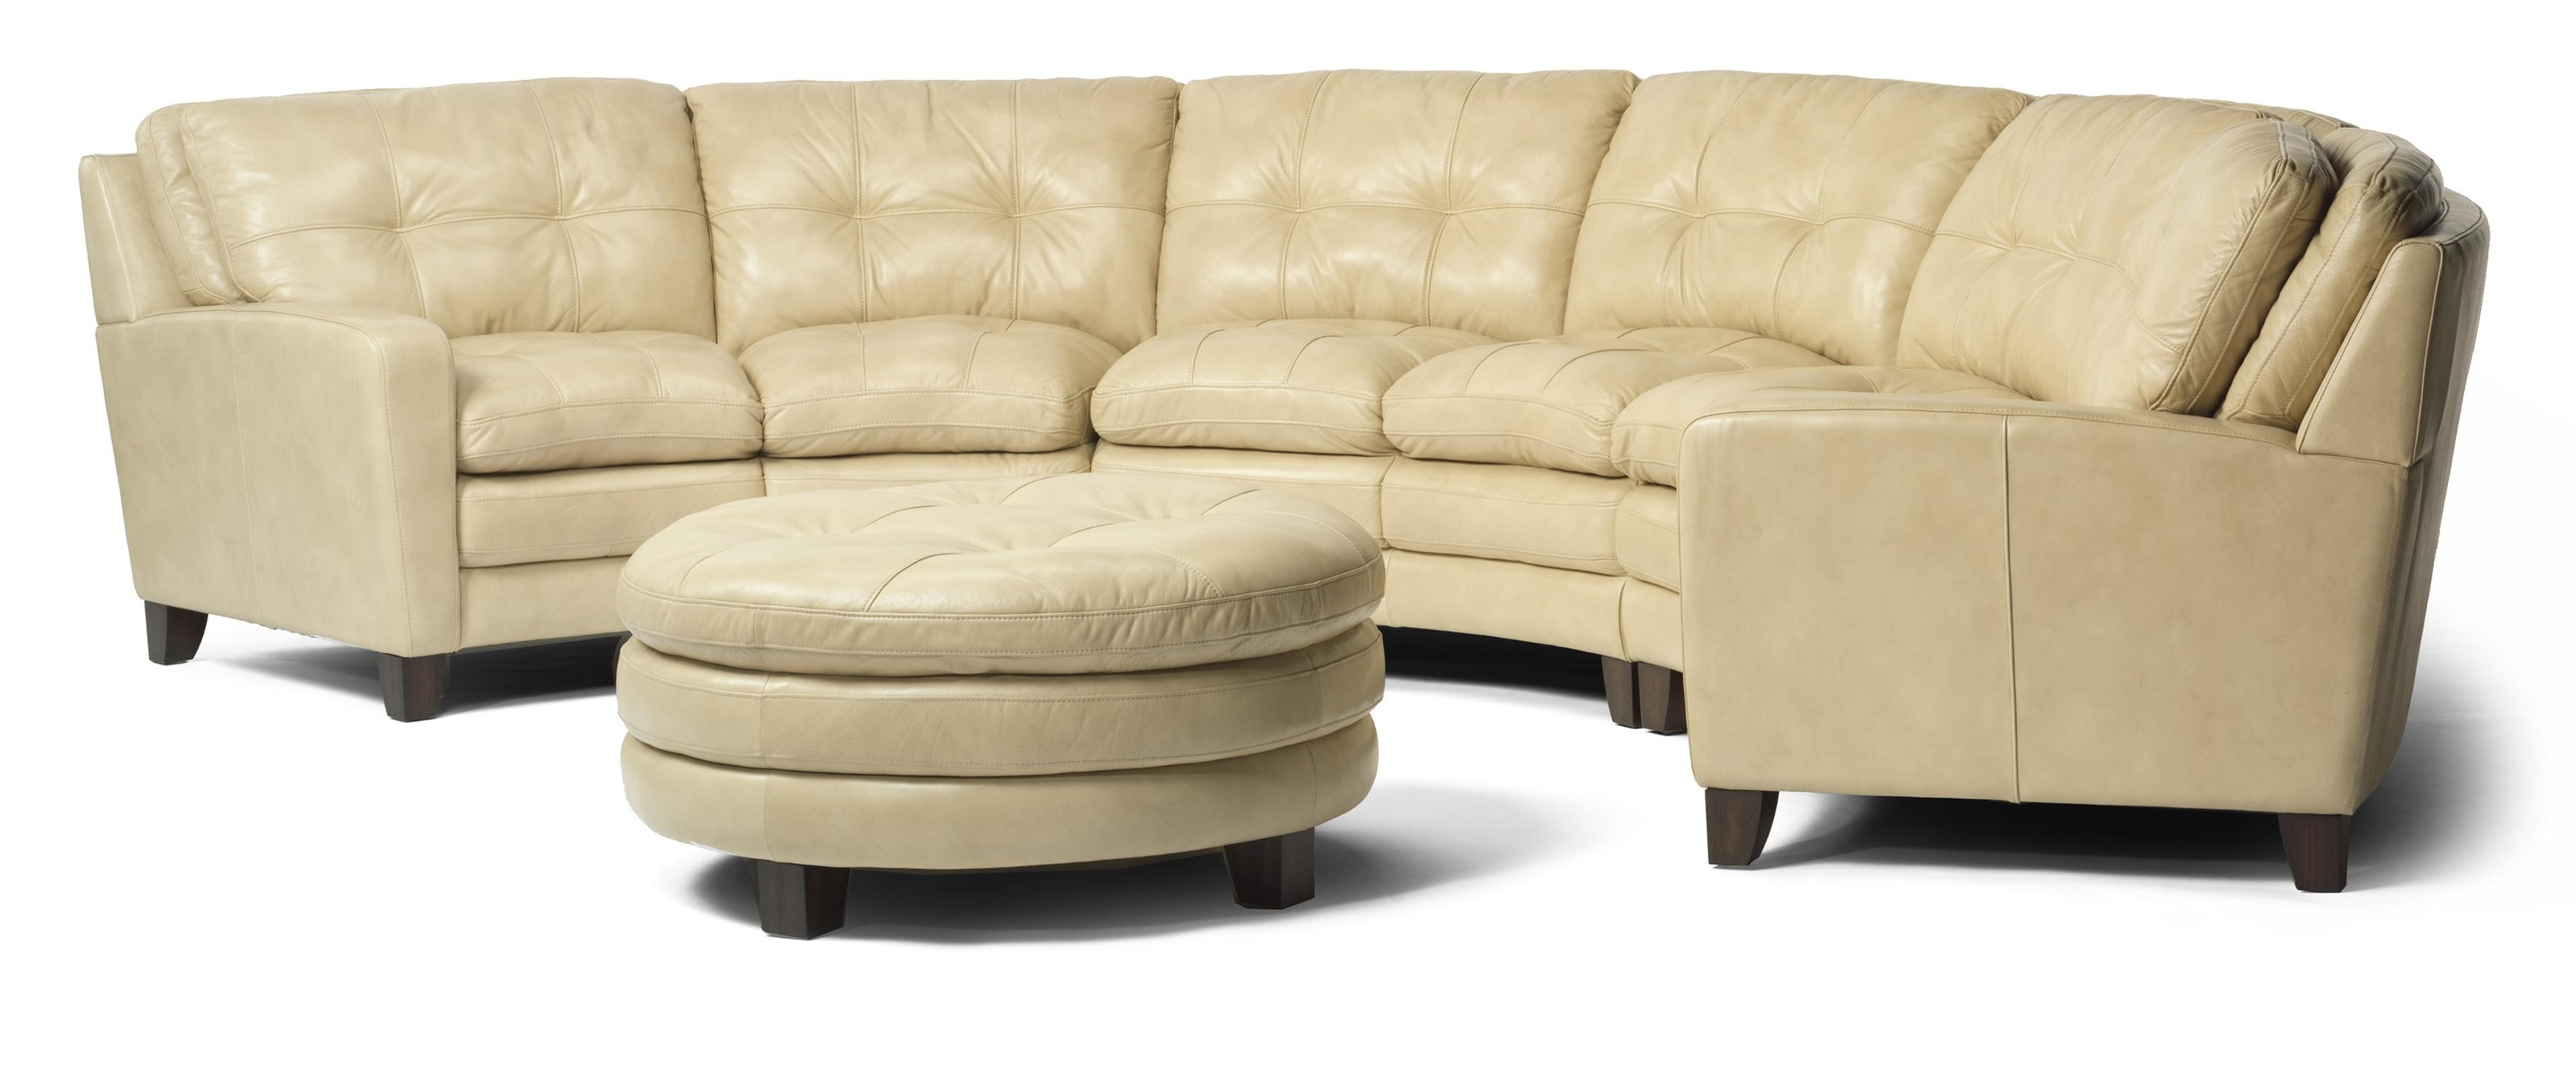 Flexsteel Latitudes – South Street Curved Sectional Sofa – Ahfa Within Most Up To Date Nh Sectional Sofas (View 11 of 15)